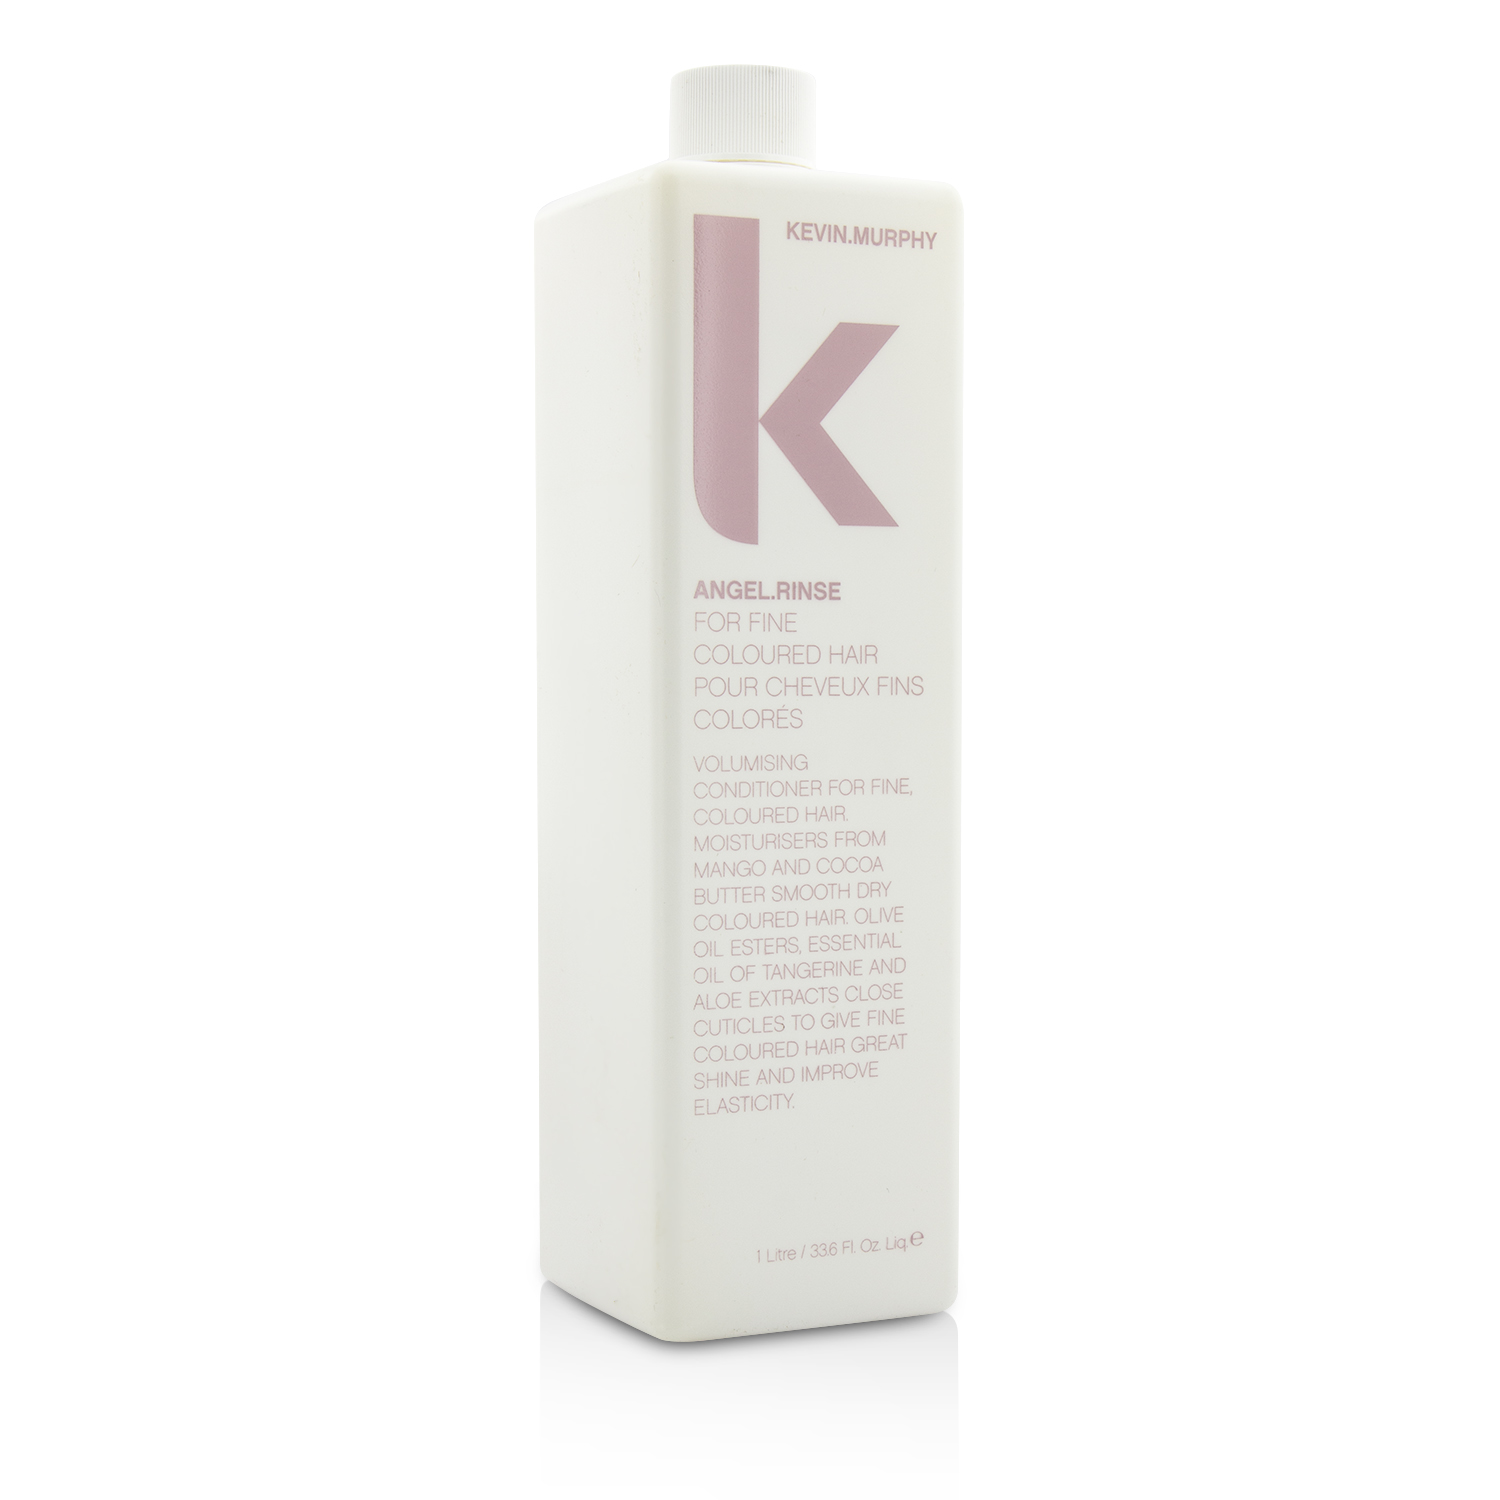 Angel.Rinse (A Volumising Conditioner - For Fine Dry or Coloured Hair) Kevin.Murphy Image